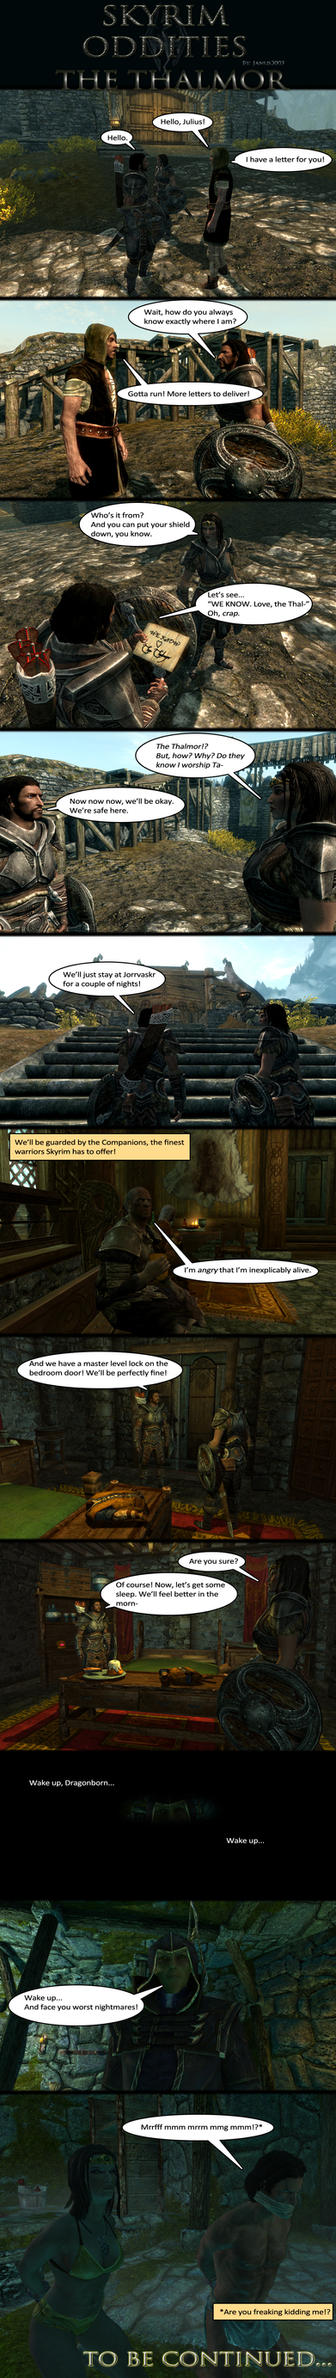 Skyrim Oddities: The Thalmor by Janus3003